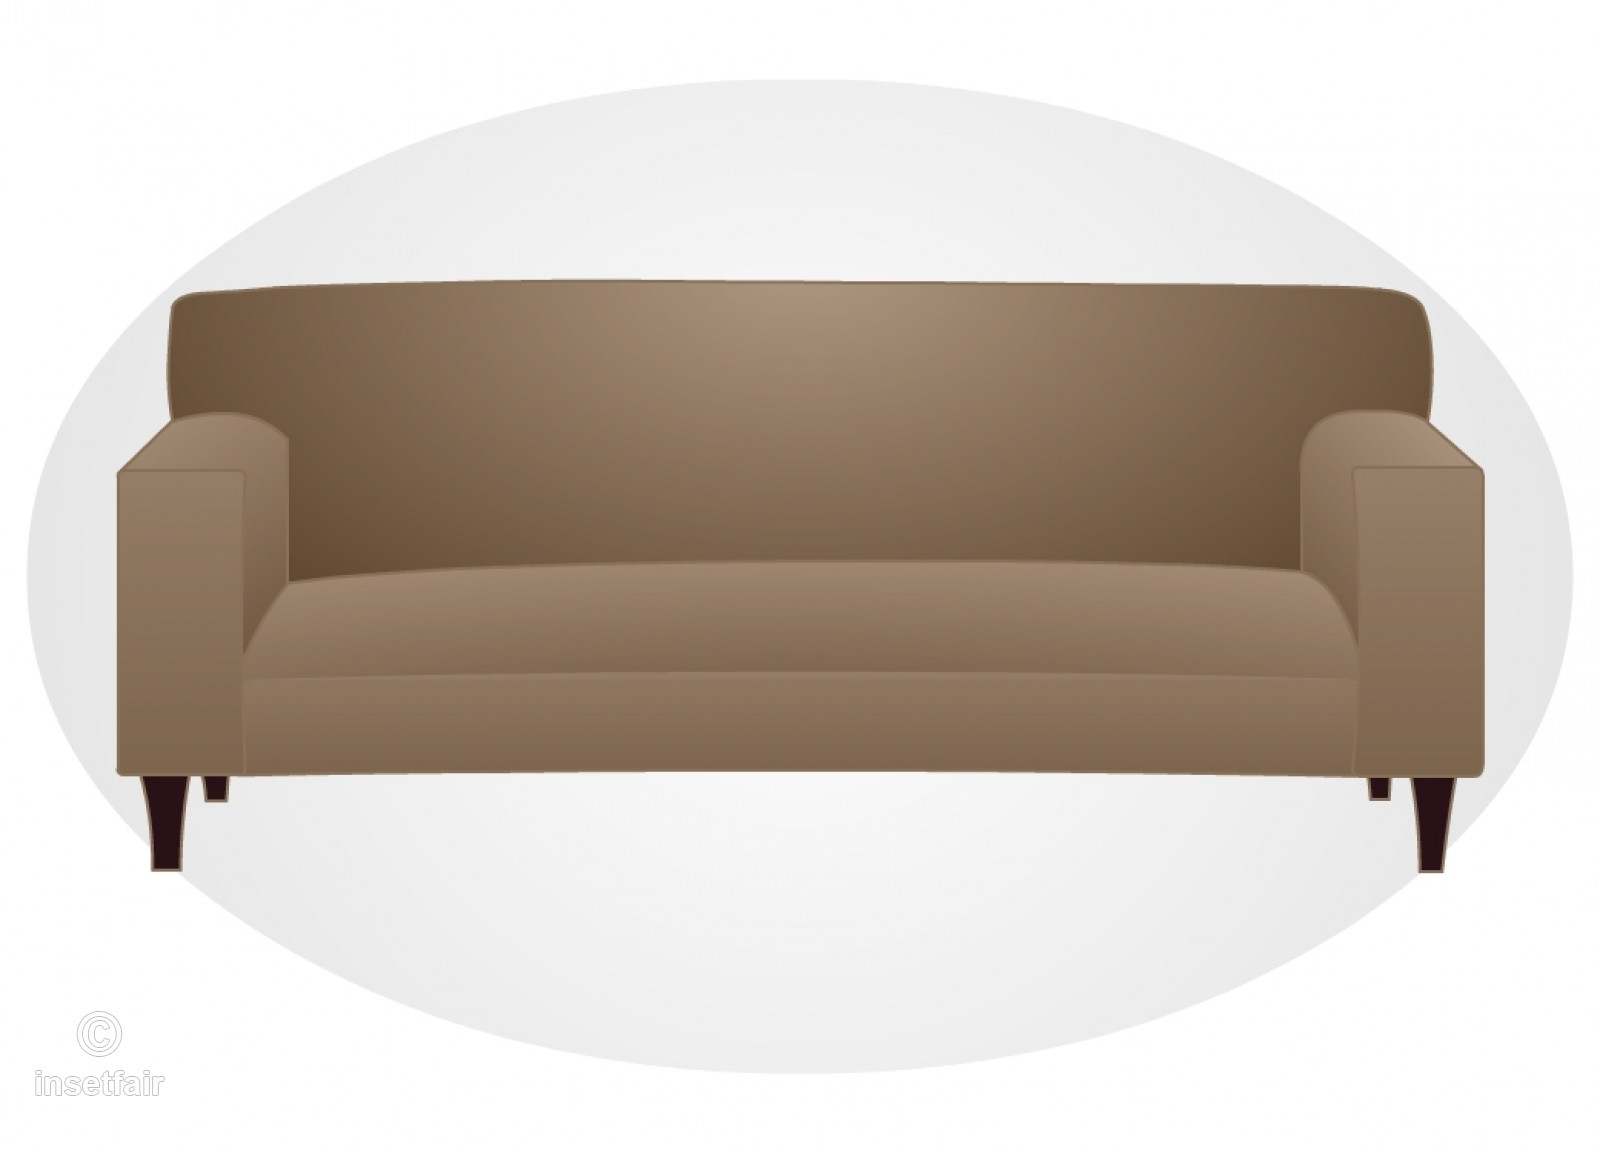 Sofa Texture Vector The Best Free Sofa Vector Images Download From 75 Free Vectors Of